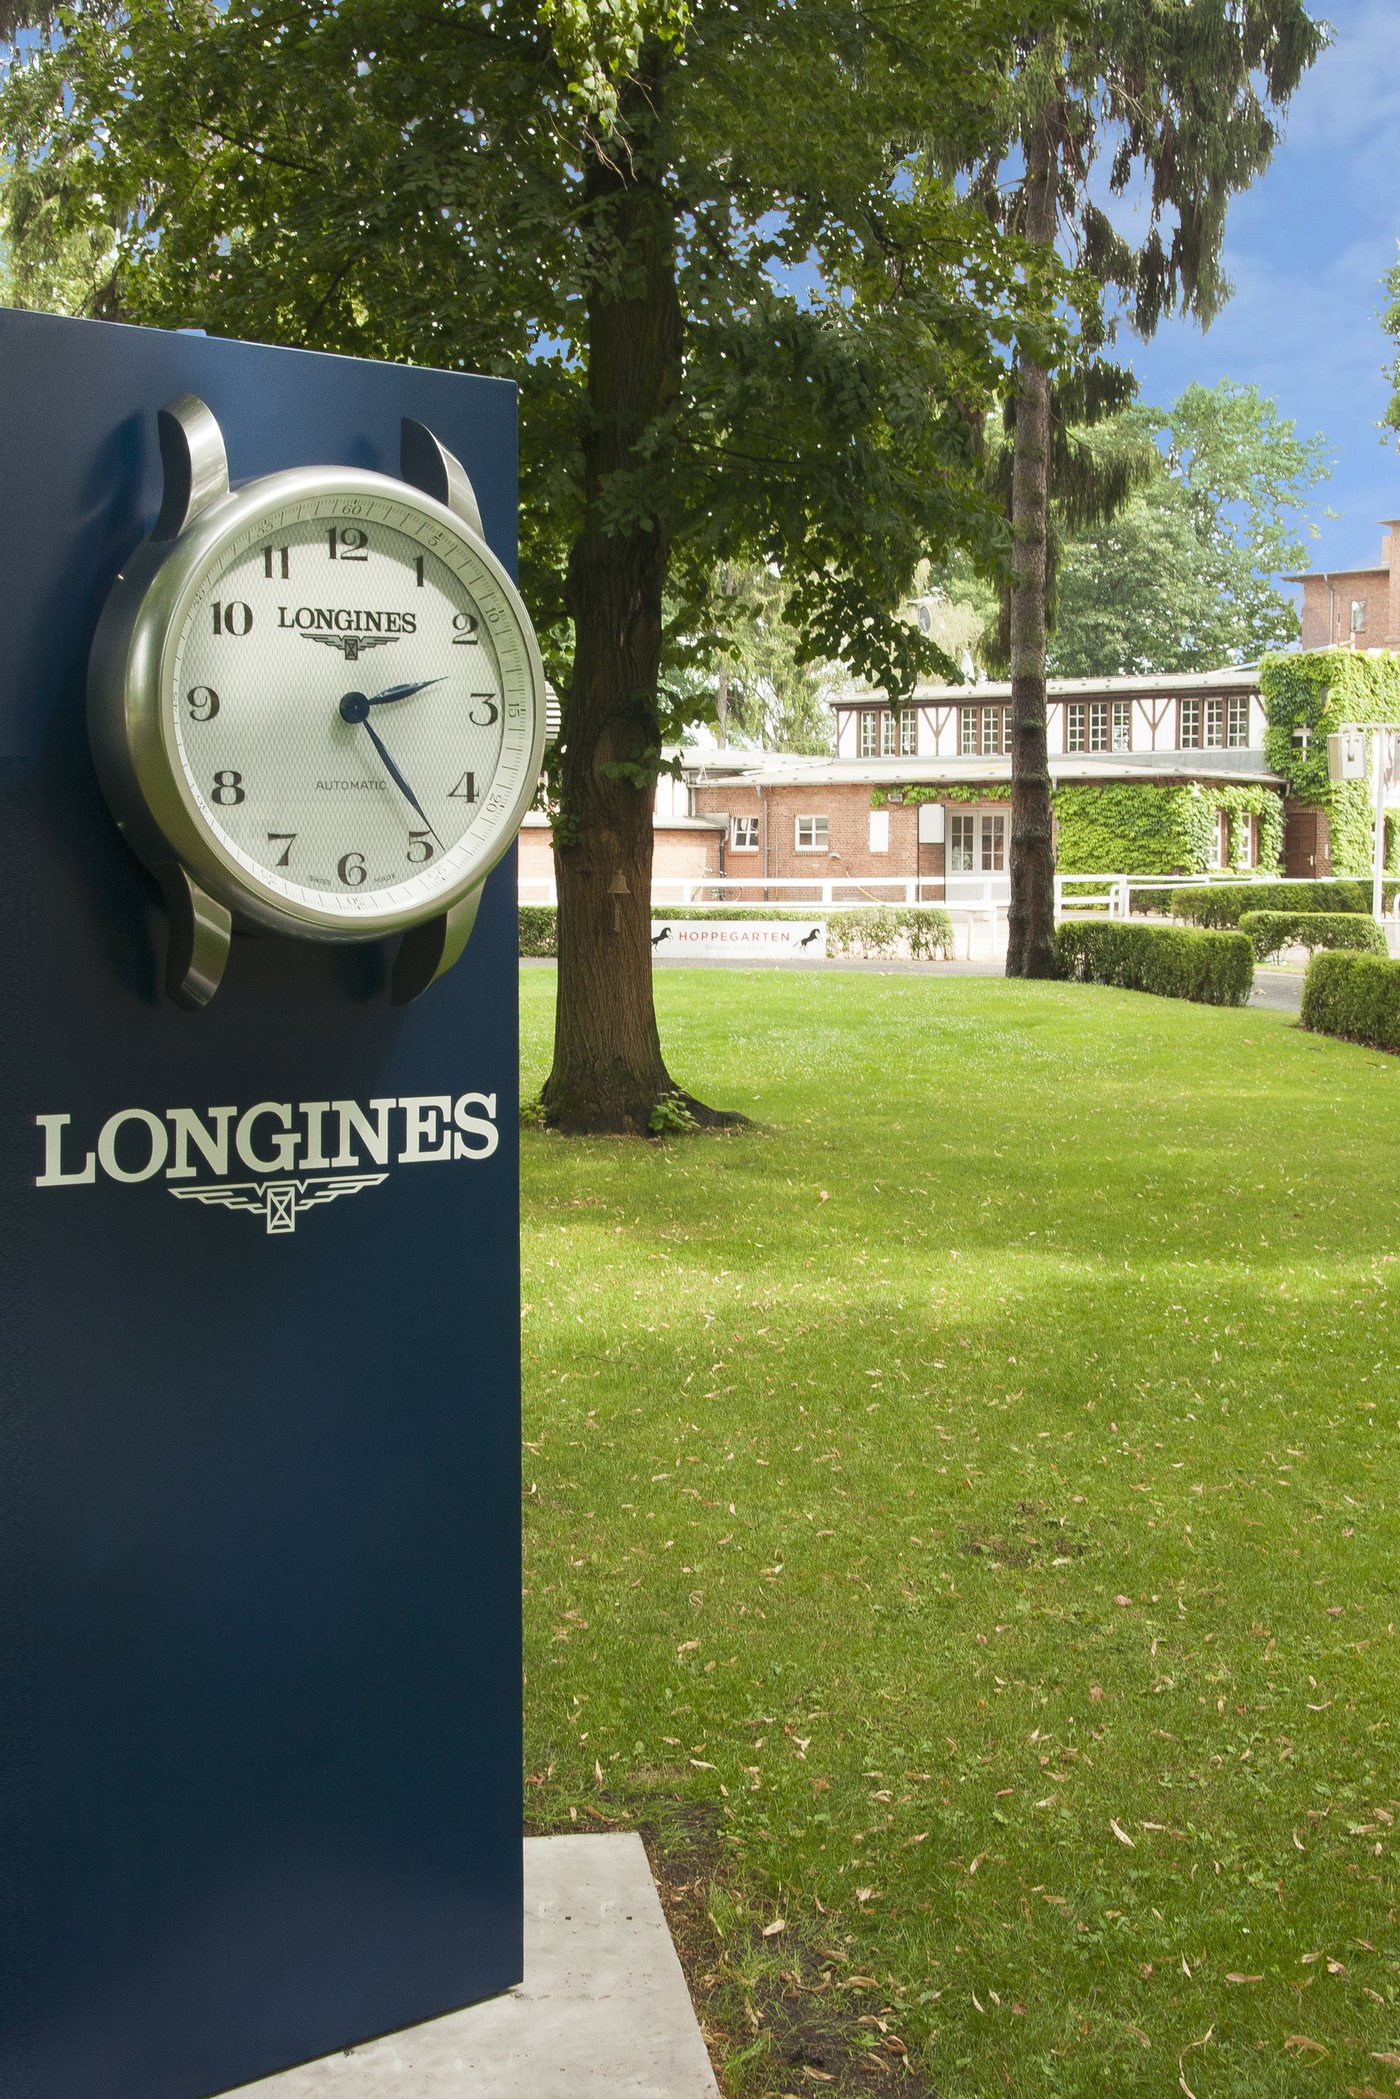 Longines Flat Racing Event: Longines announces its partnership with Berlin-Hoppegarten Racecourse and will lend its name to the Longines Grosser Preis von Berlin 1